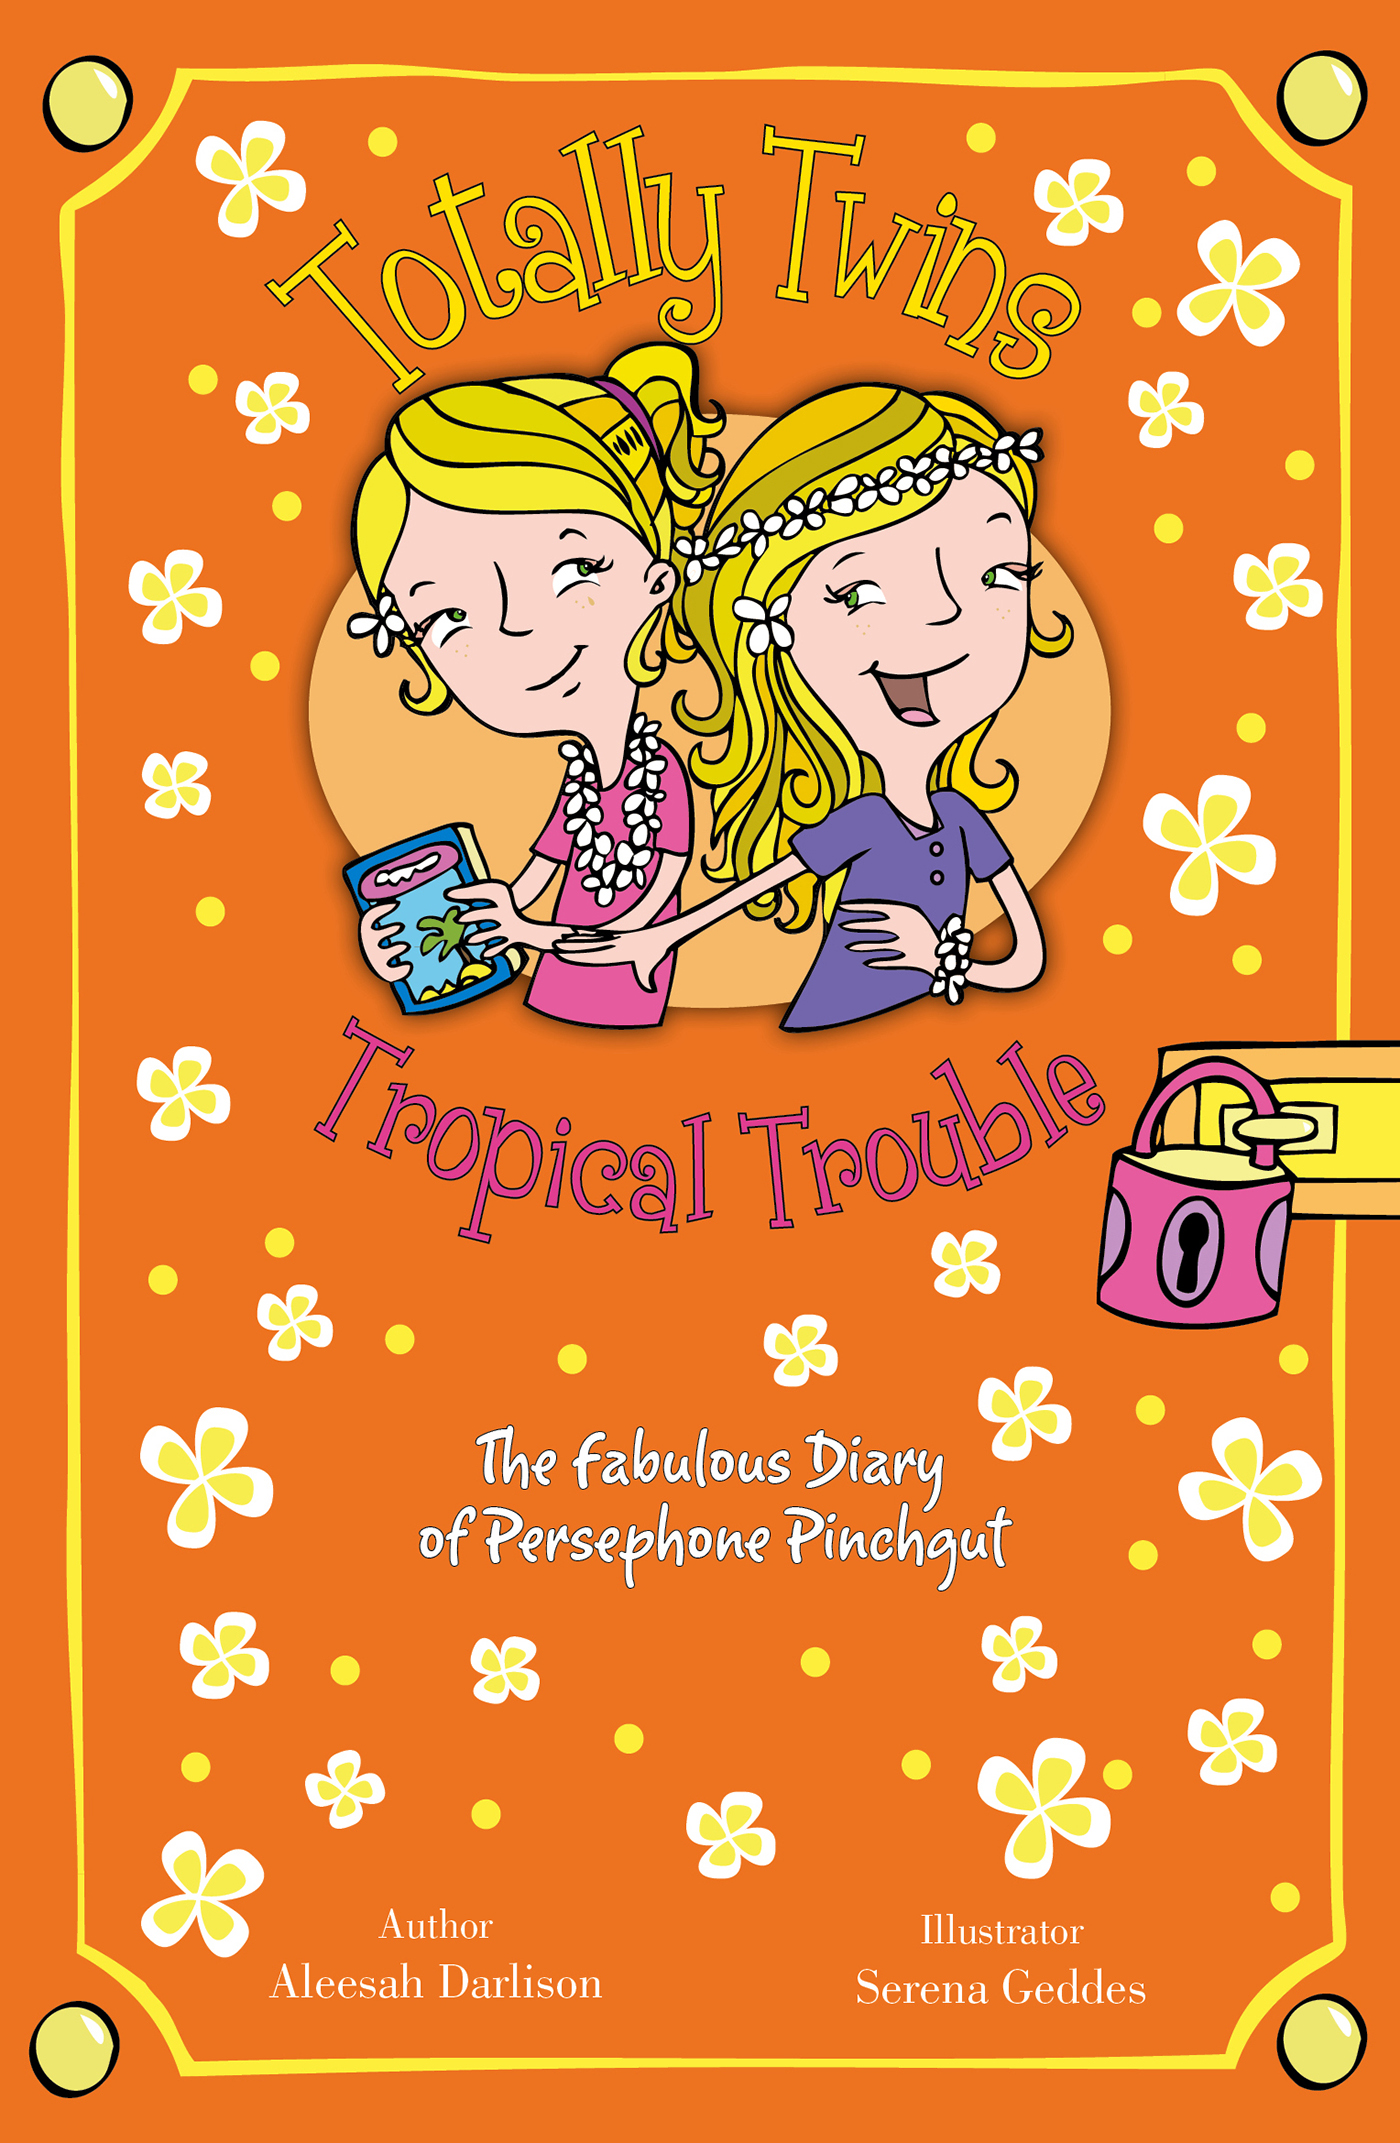 Tropical Trouble: Totally Twins Series